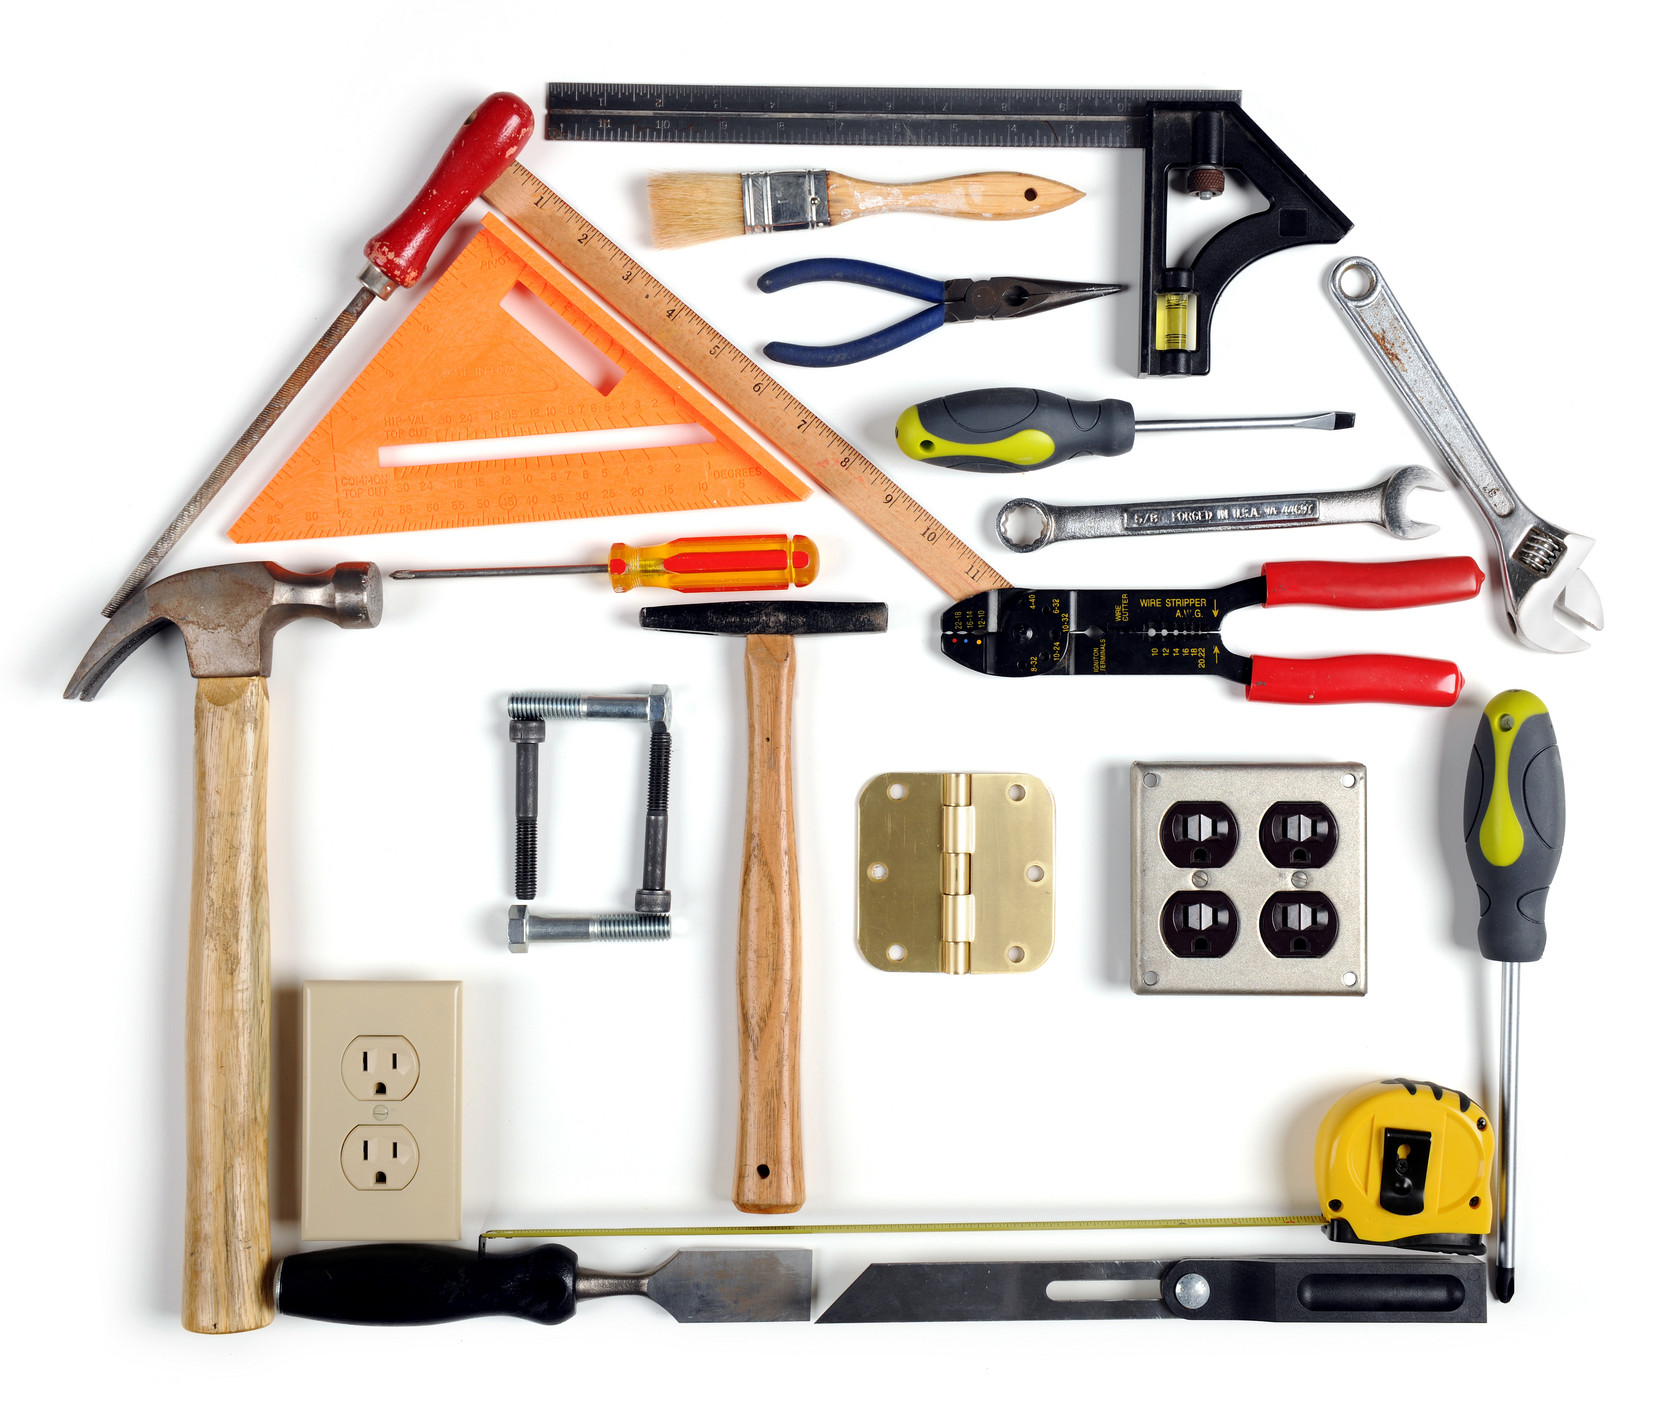 Top 10 inexpensive home improvement tips to increase value of your home. Inexpensive Home Improvement Tips to Increase Your Home  39 s Value